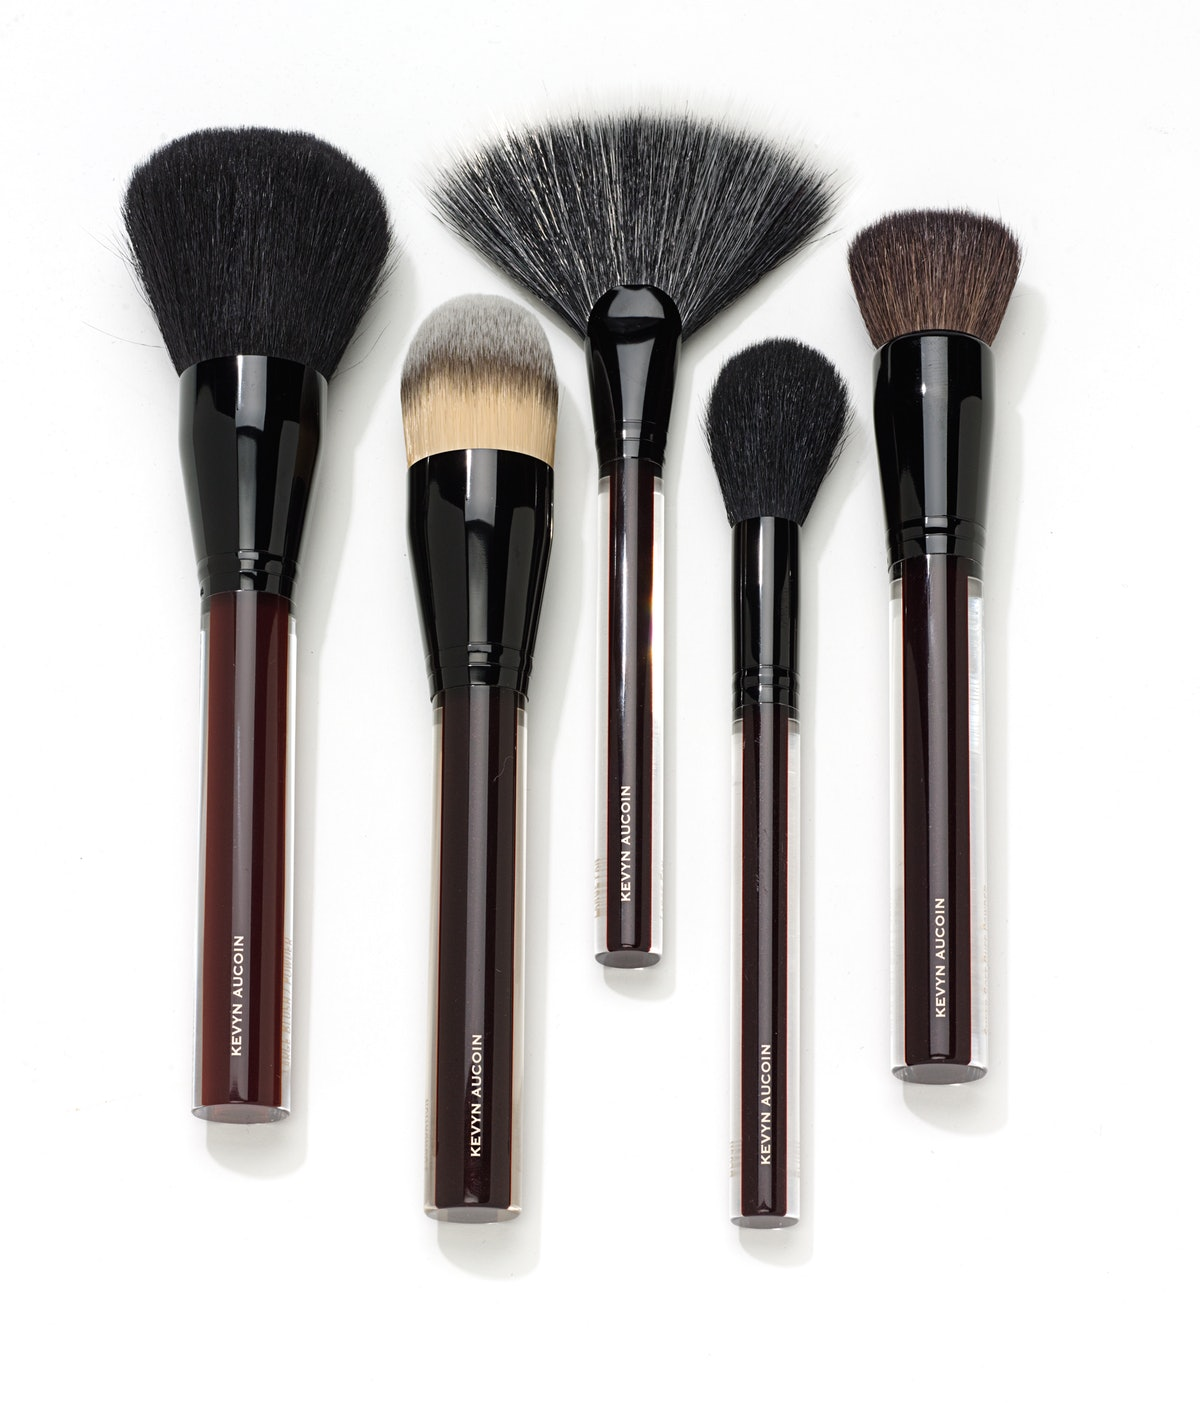 Kevyn Aucoin the Essential Brush Collection, $650 for 14 brushes, [net-a-porter.com](http://rstyle.me/n/drj373w3n).